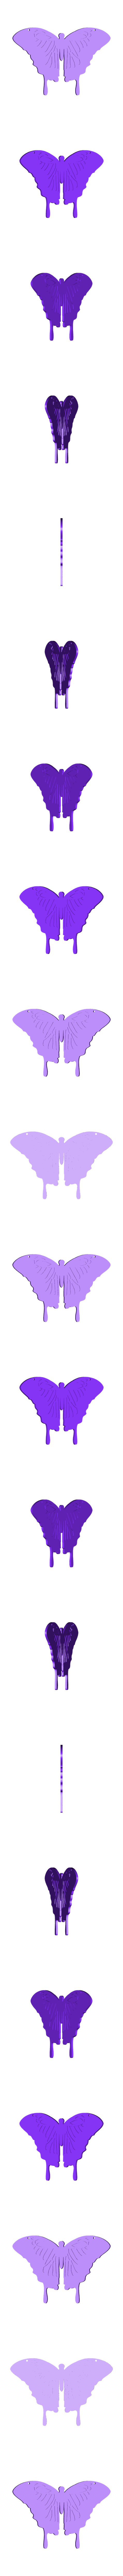 butterfly_all_dual.stl Download free STL file Butterfly Necklace • 3D printable model, LordTailor